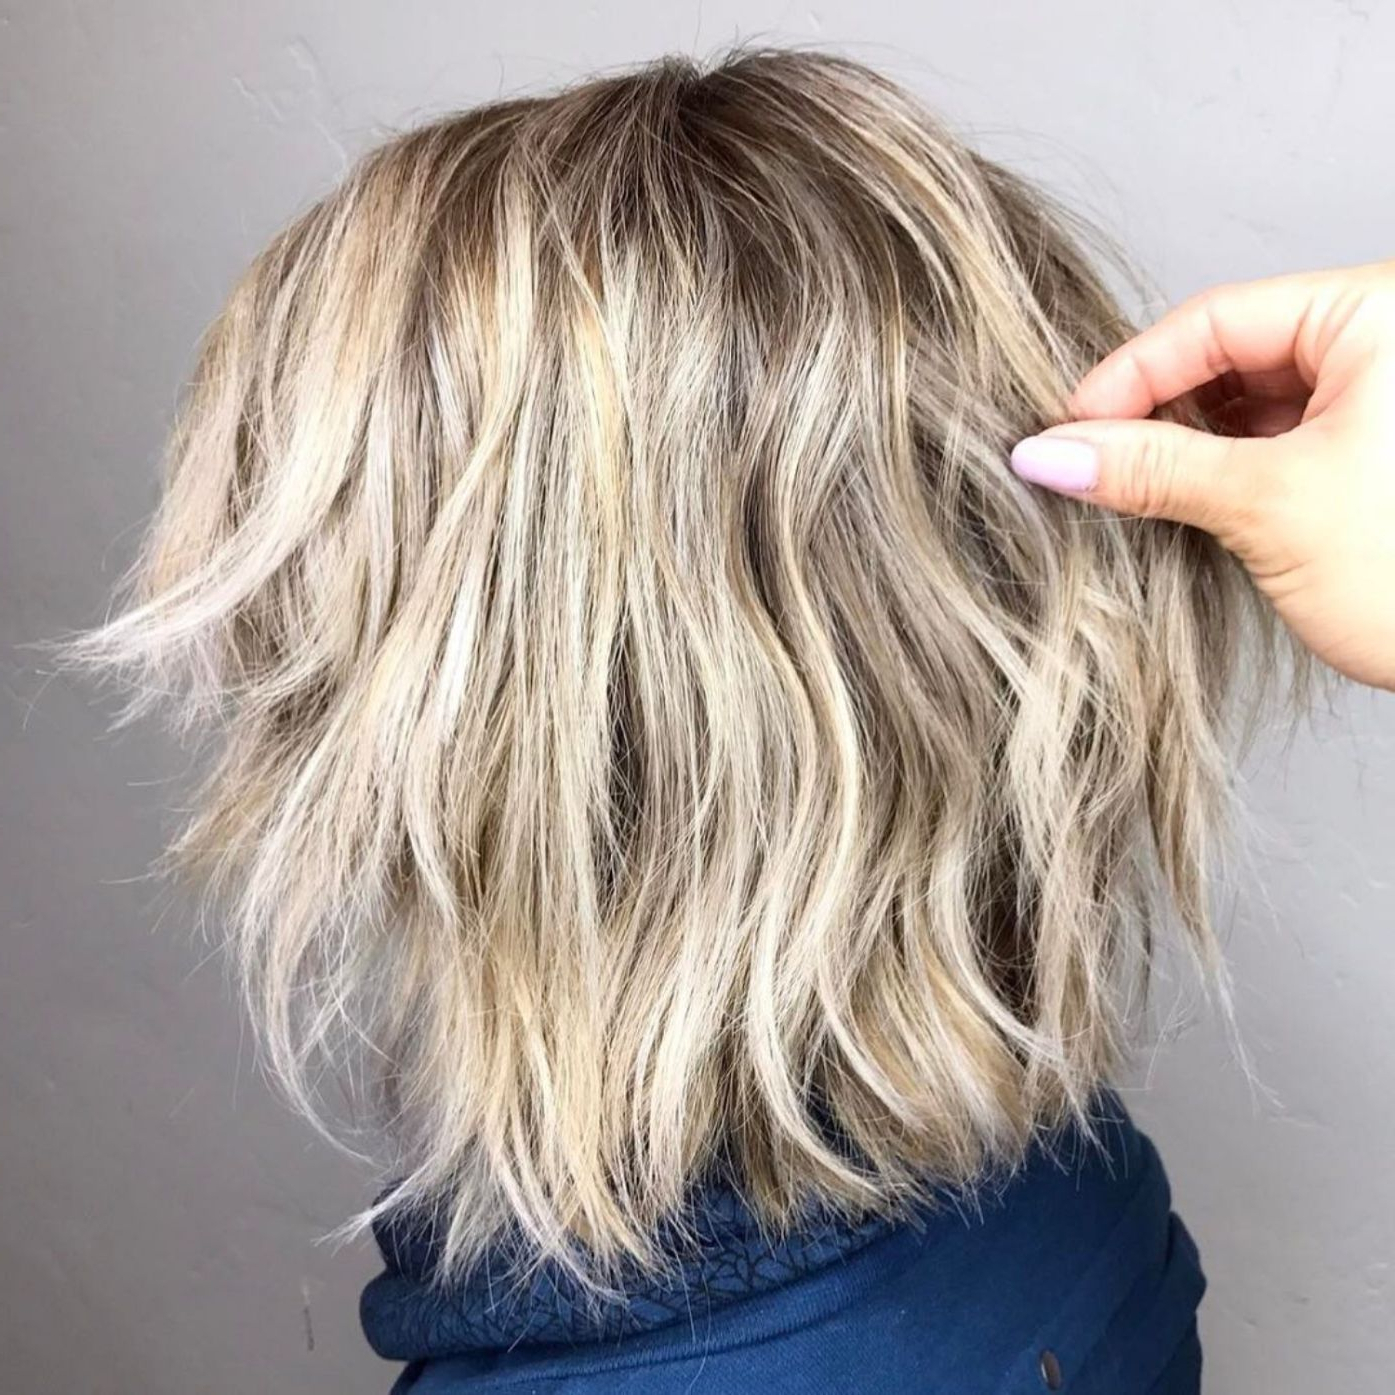 60 Short Shag Hairstyles That You Simply Can't Miss | Grow Regarding Bronde Bob Shag Haircuts With Short Back (Gallery 16 of 20)